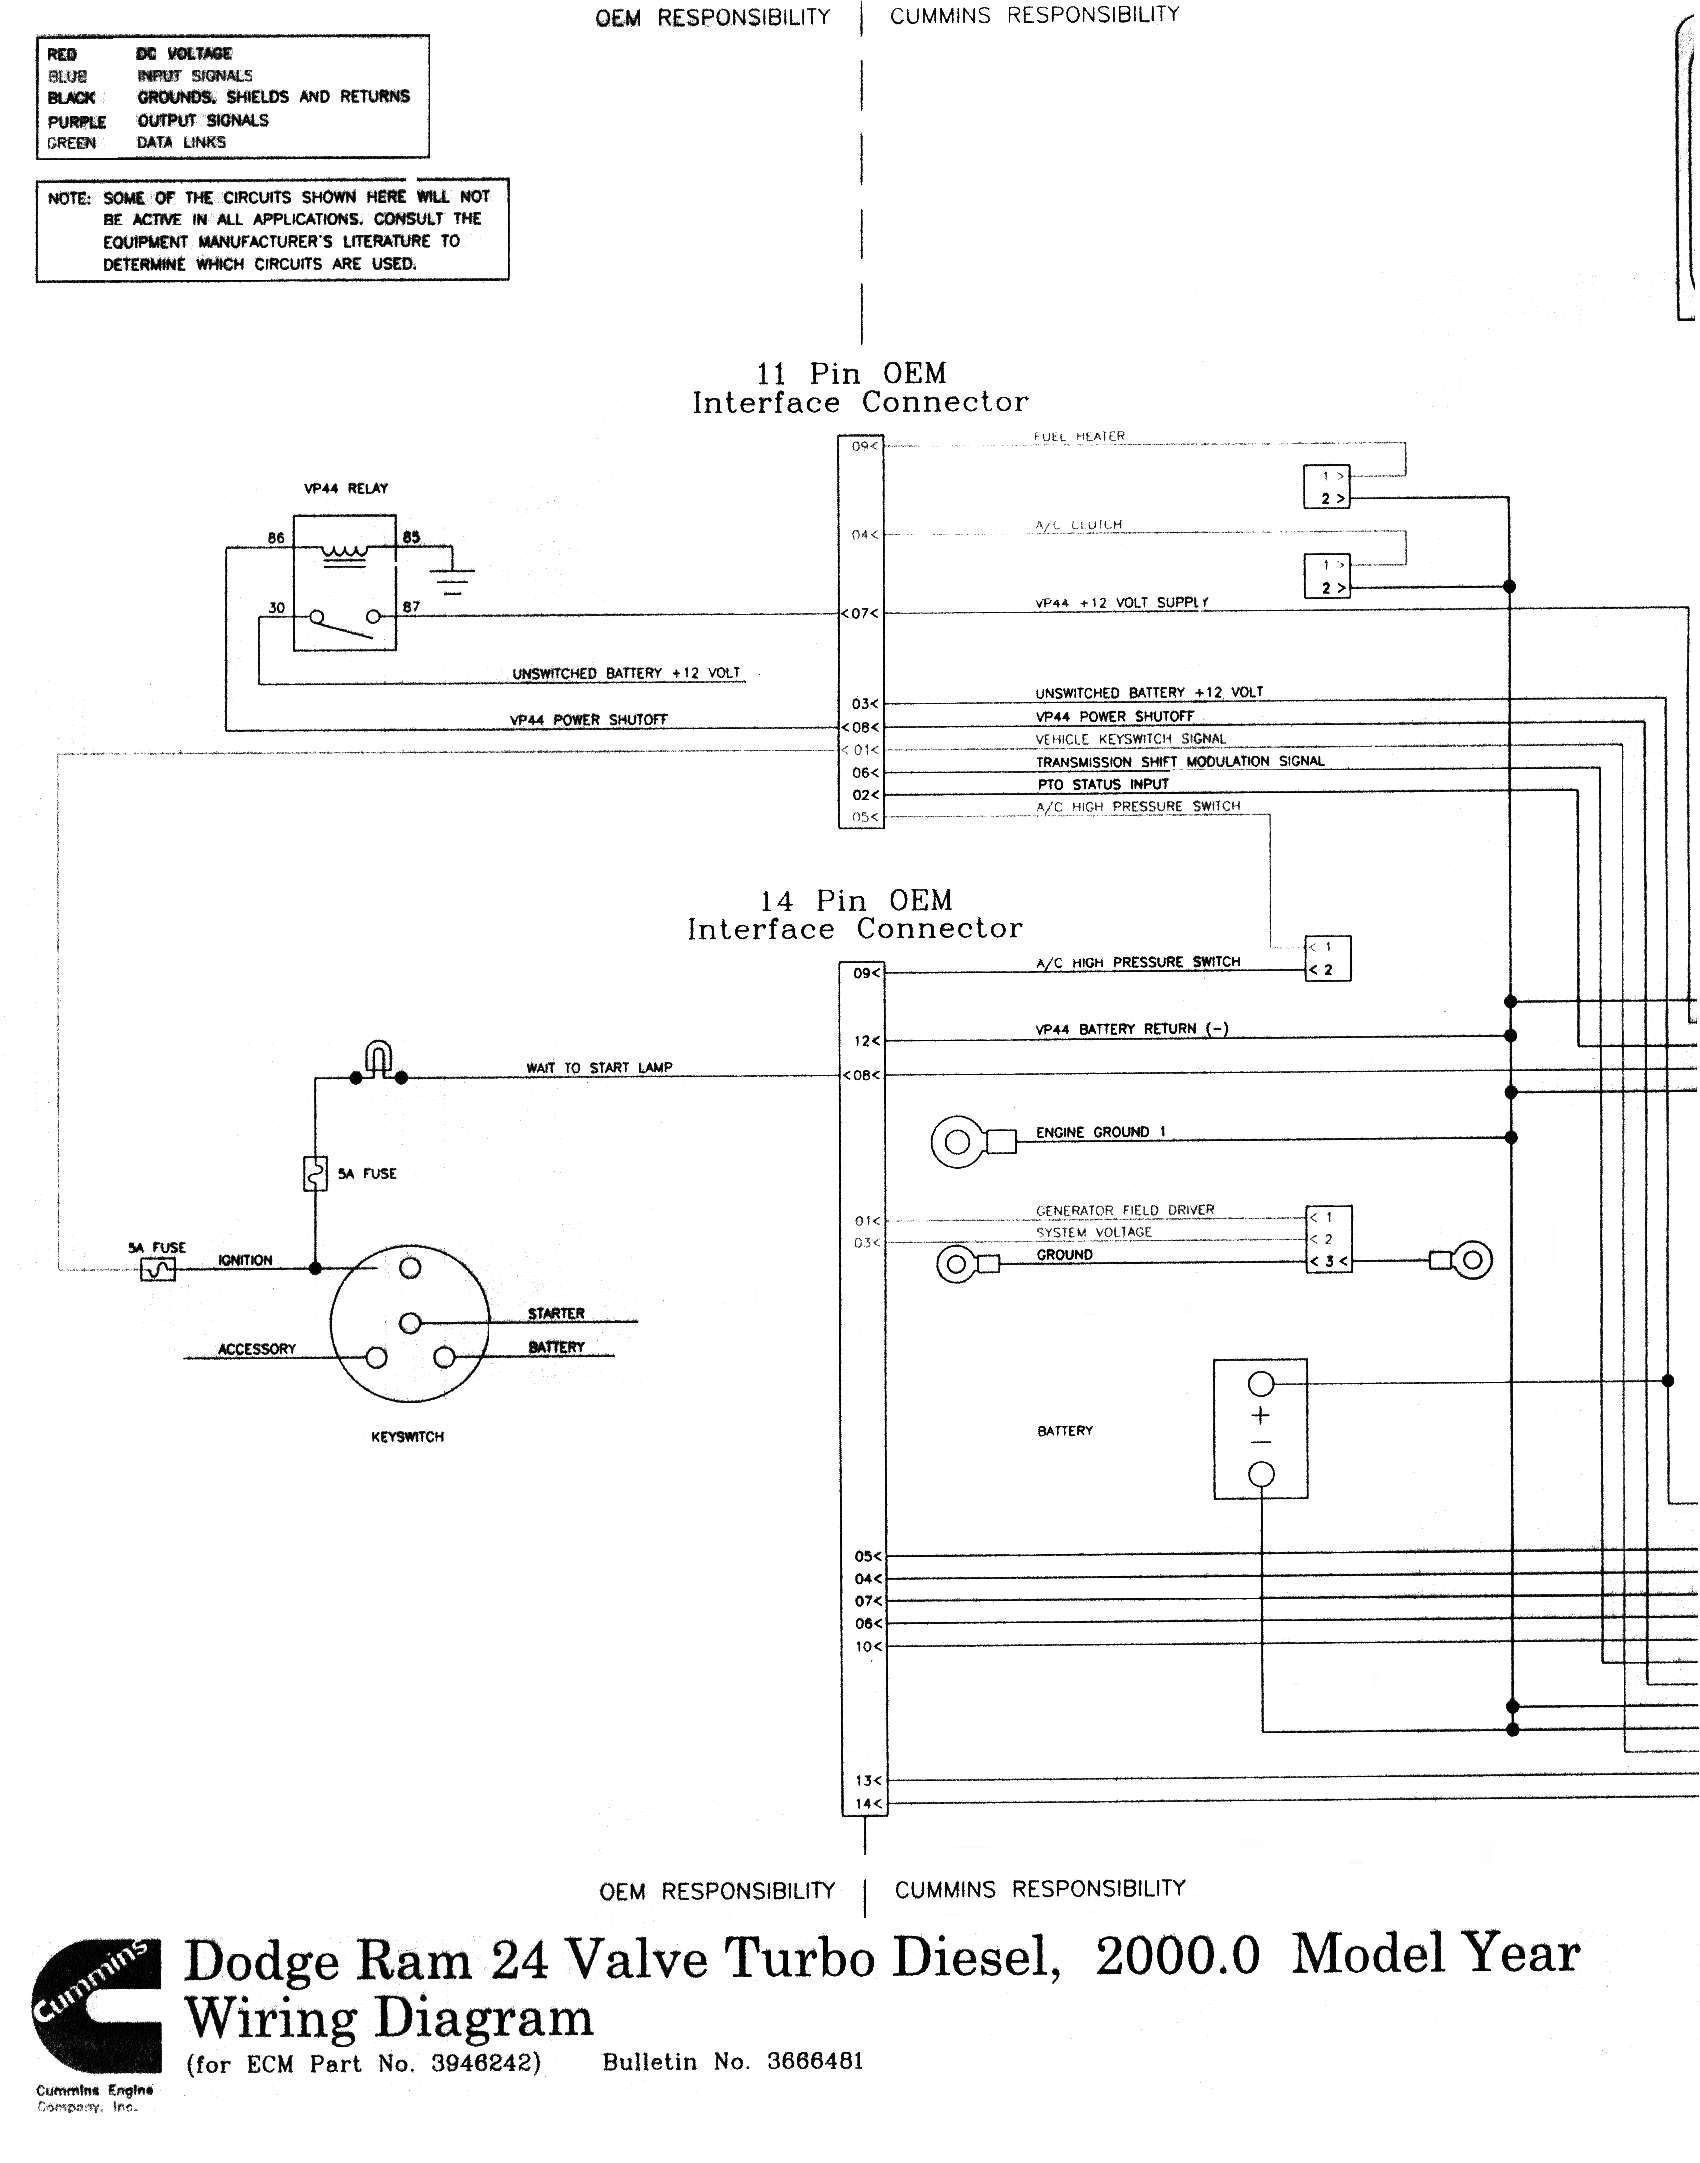 2005 dodge cummins ecm wiring diagram Download-2006 Dodge Ram 1500 Trailer Wiring Diagram New Wiring Diagram 2007 Dodge Ram 1500 Best Ecm 2-g